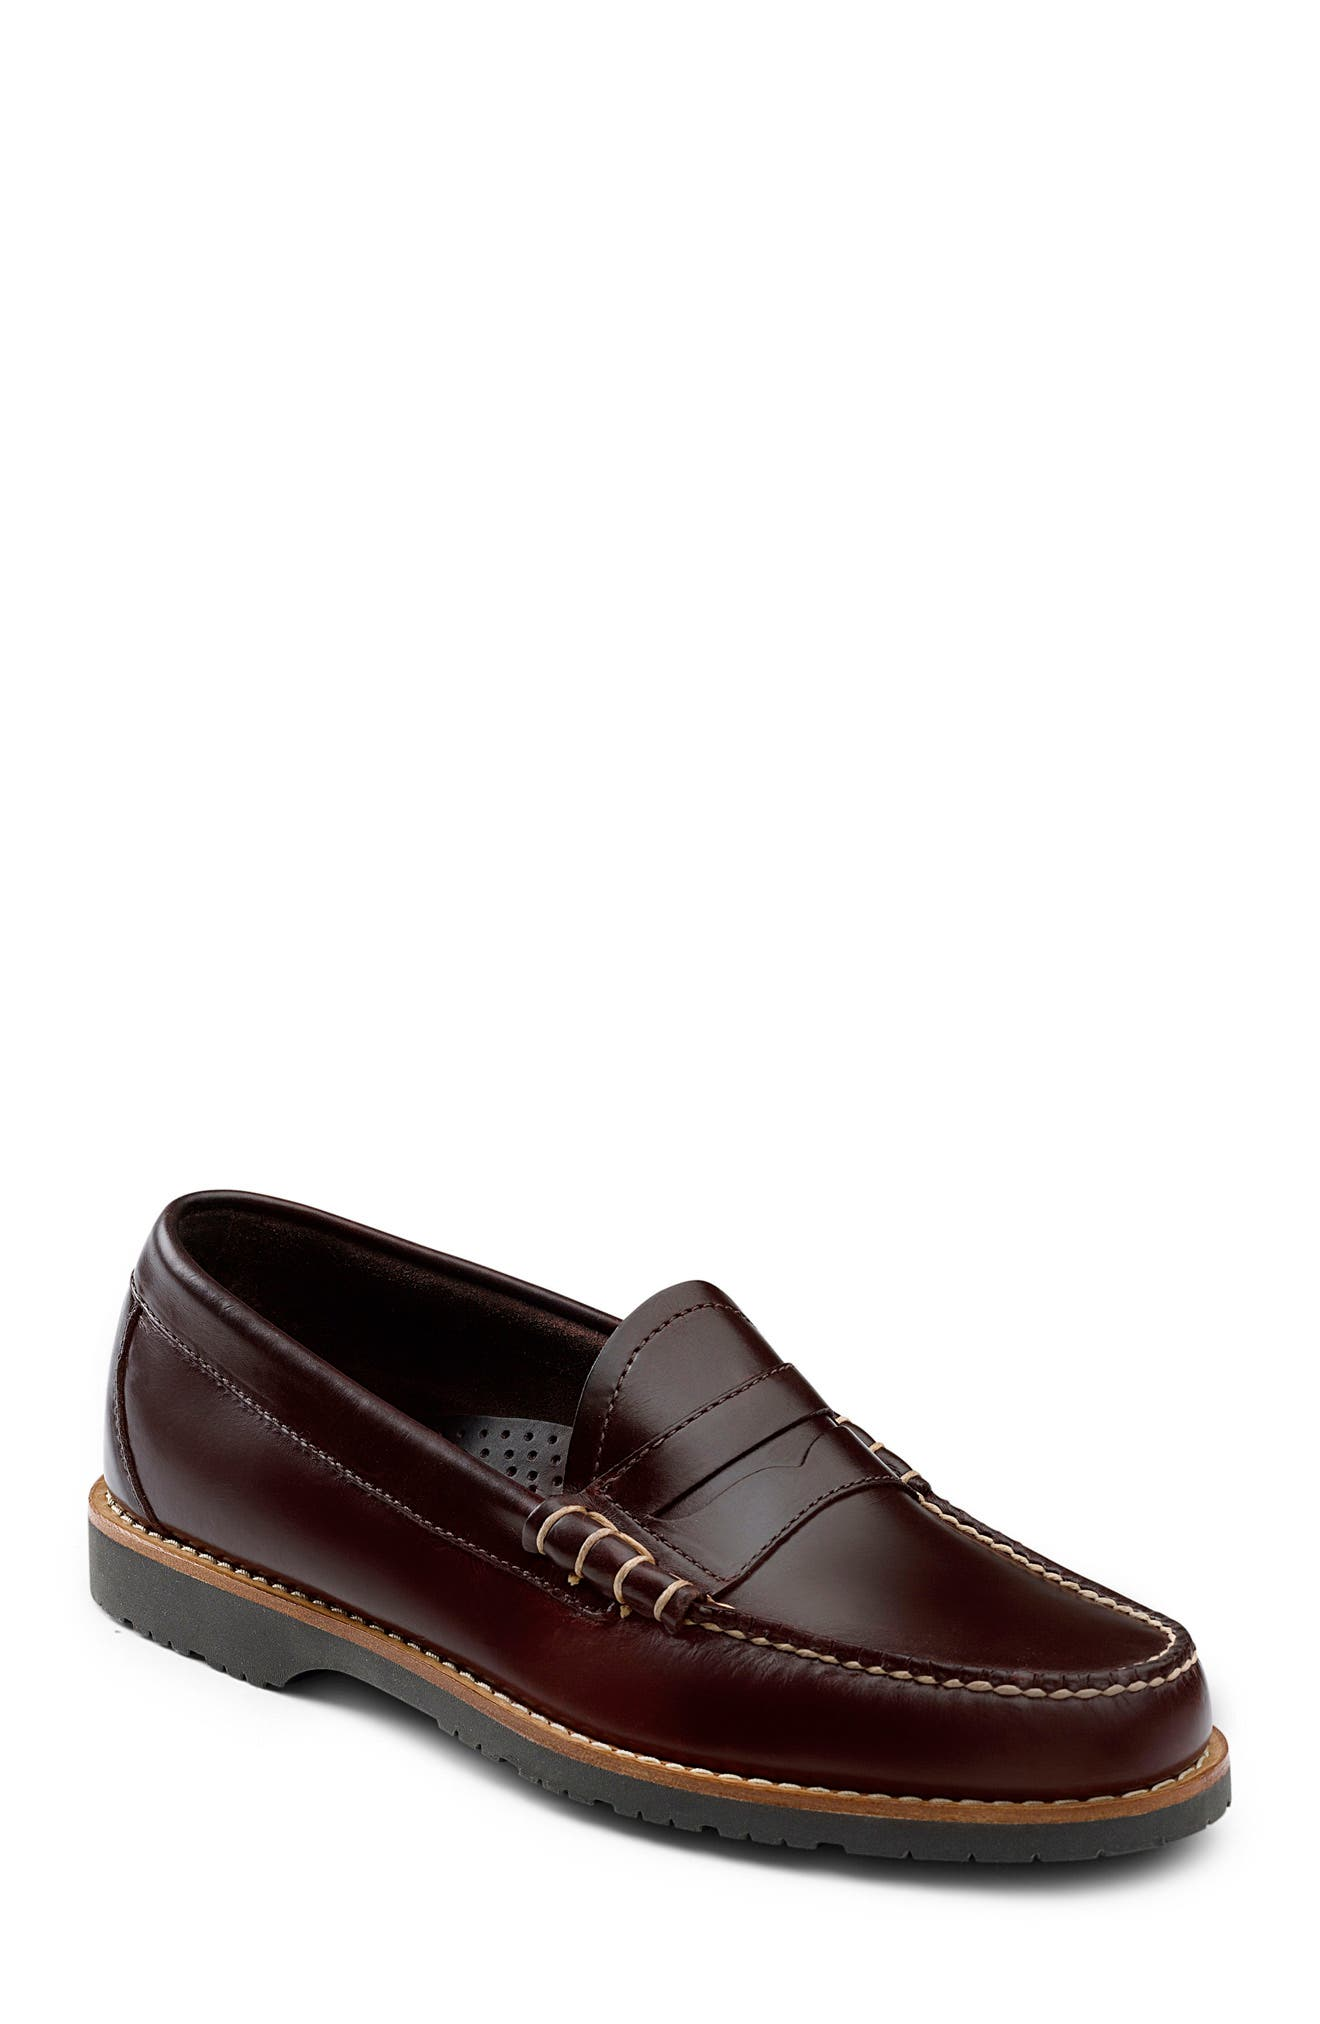 Simon Penny Loafer,                         Main,                         color, 930